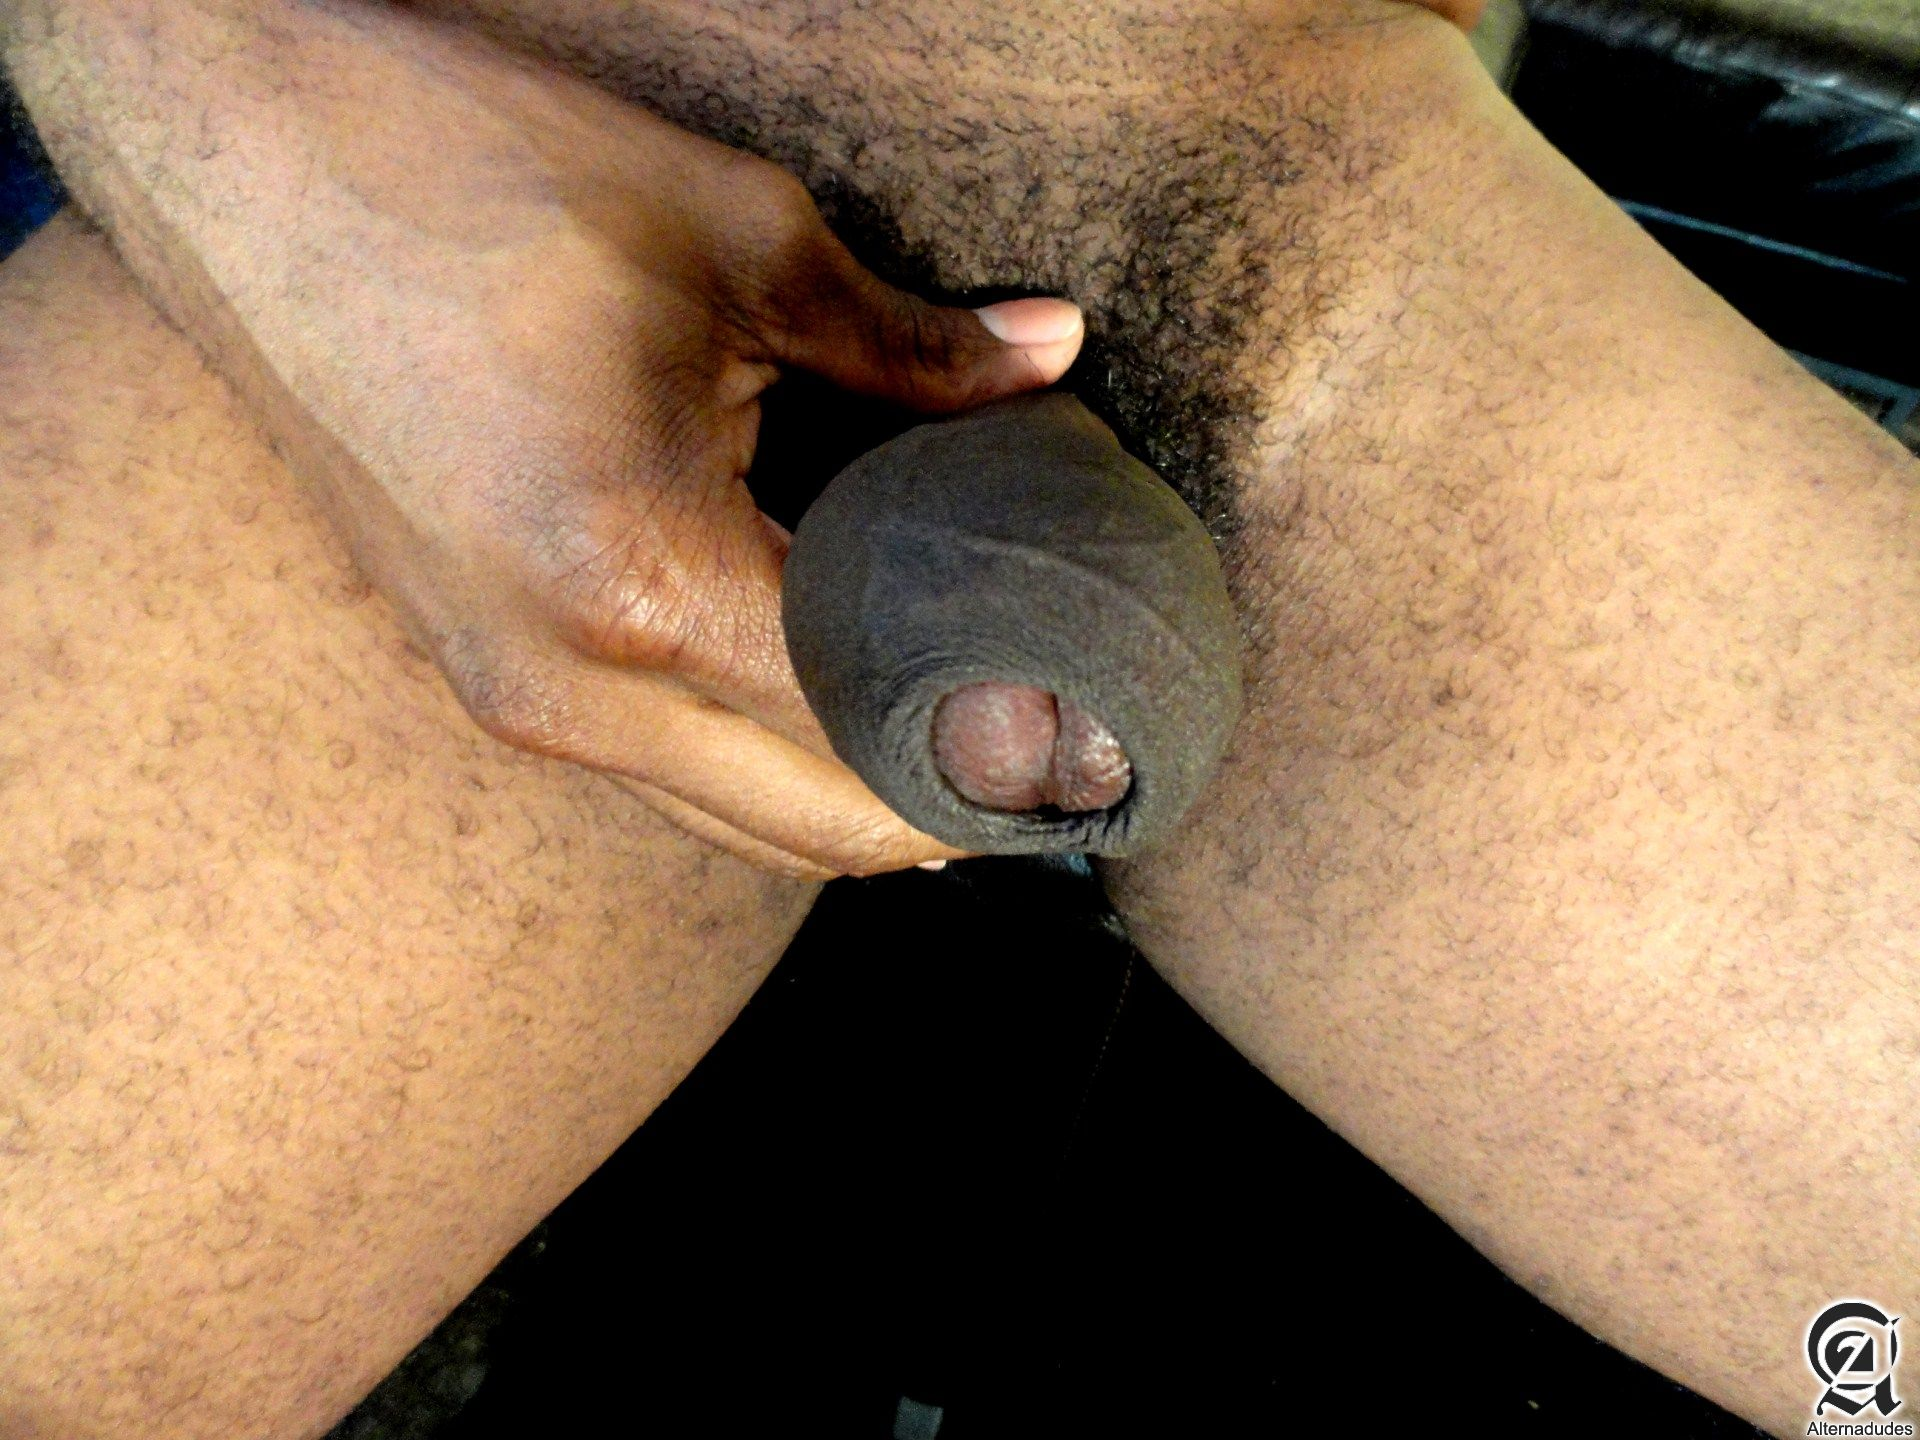 Uncut old men porno sex and black gay naked - RedTubecom